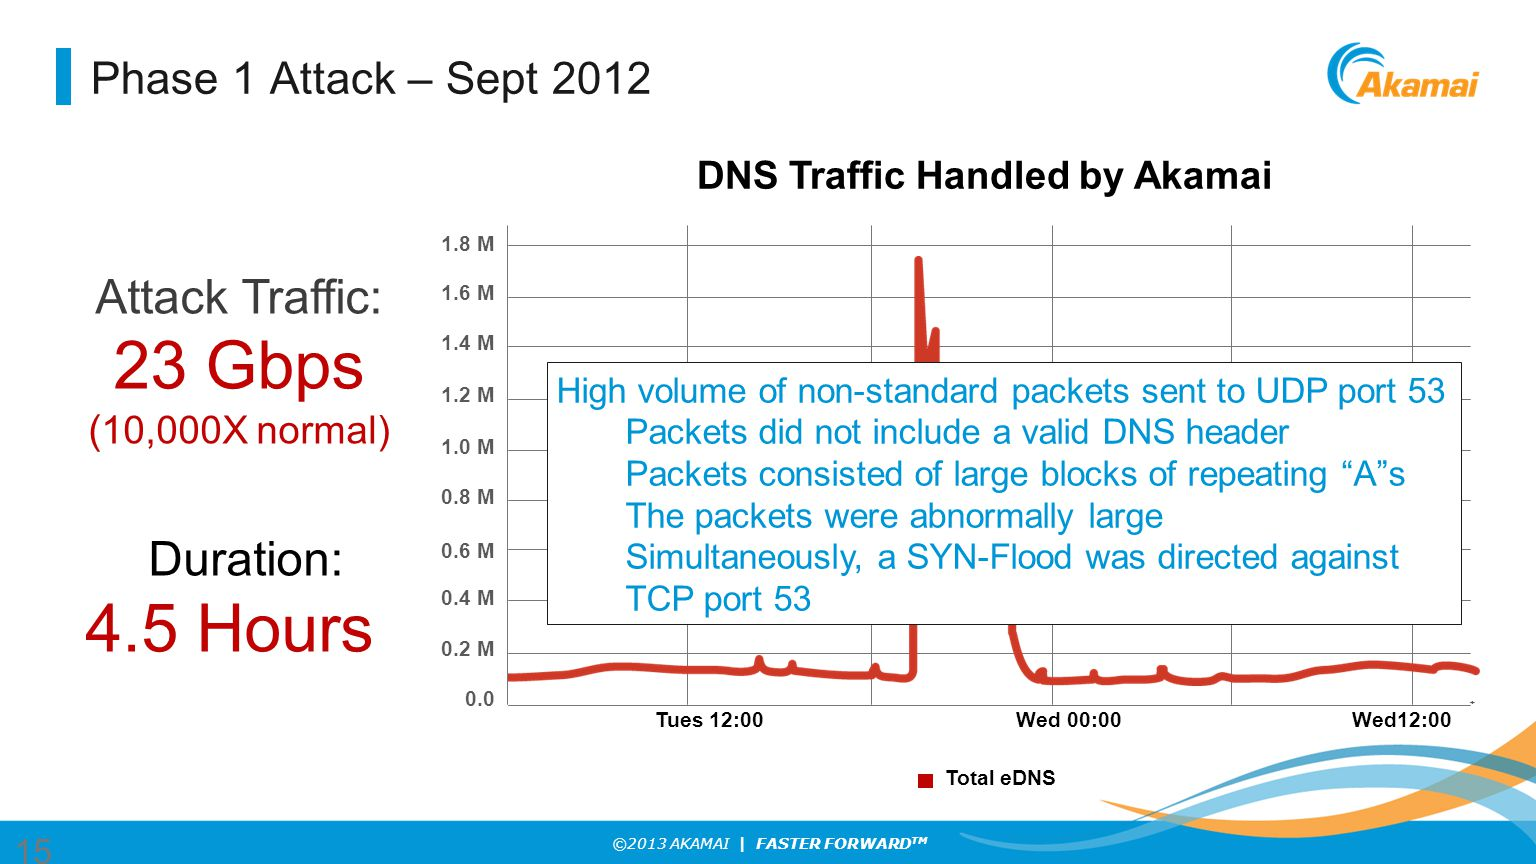 ©2013 AKAMAI | FASTER FORWARD TM DNS Traffic Handled by Akamai 1.8 M 1.6 M 1.4 M 1.2 M 1.0 M 0.8 M 0.6 M 0.4 M 0.2 M 0.0 Total eDNS Tues 12:00Wed 00:00Wed12:00 s Phase 1 Attack – Sept 2012 15 Attack Traffic: 23 Gbps ( 10,000X normal) Duration: 4.5 Hours High volume of non-standard packets sent to UDP port 53 Packets did not include a valid DNS header Packets consisted of large blocks of repeating A s The packets were abnormally large Simultaneously, a SYN-Flood was directed against TCP port 53